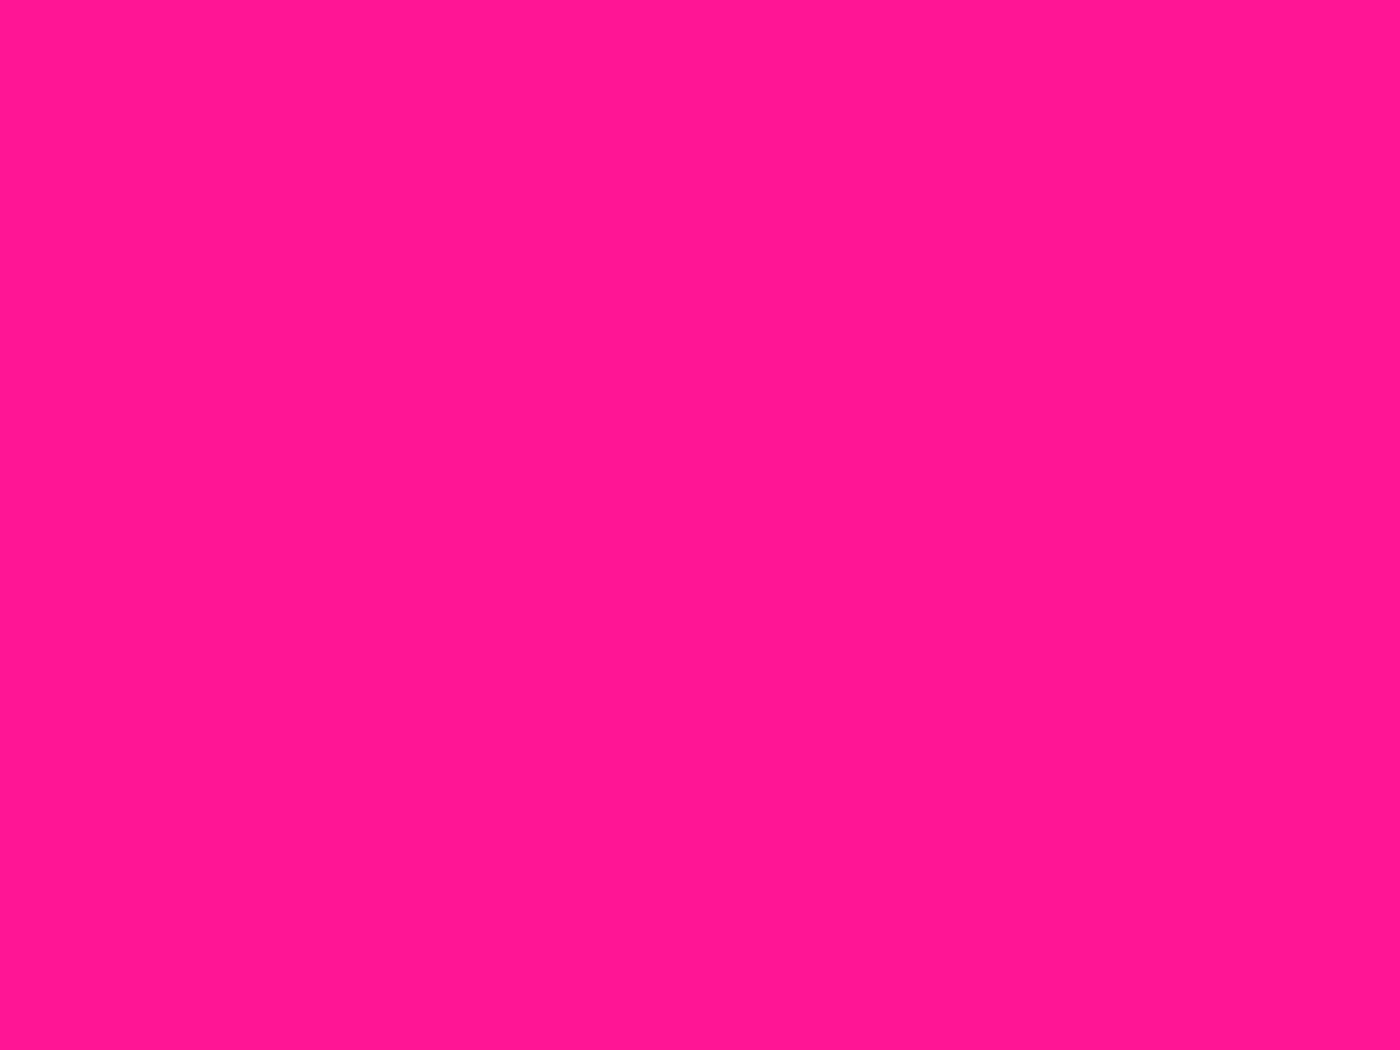 1400x1050 Fluorescent Pink Solid Color Background